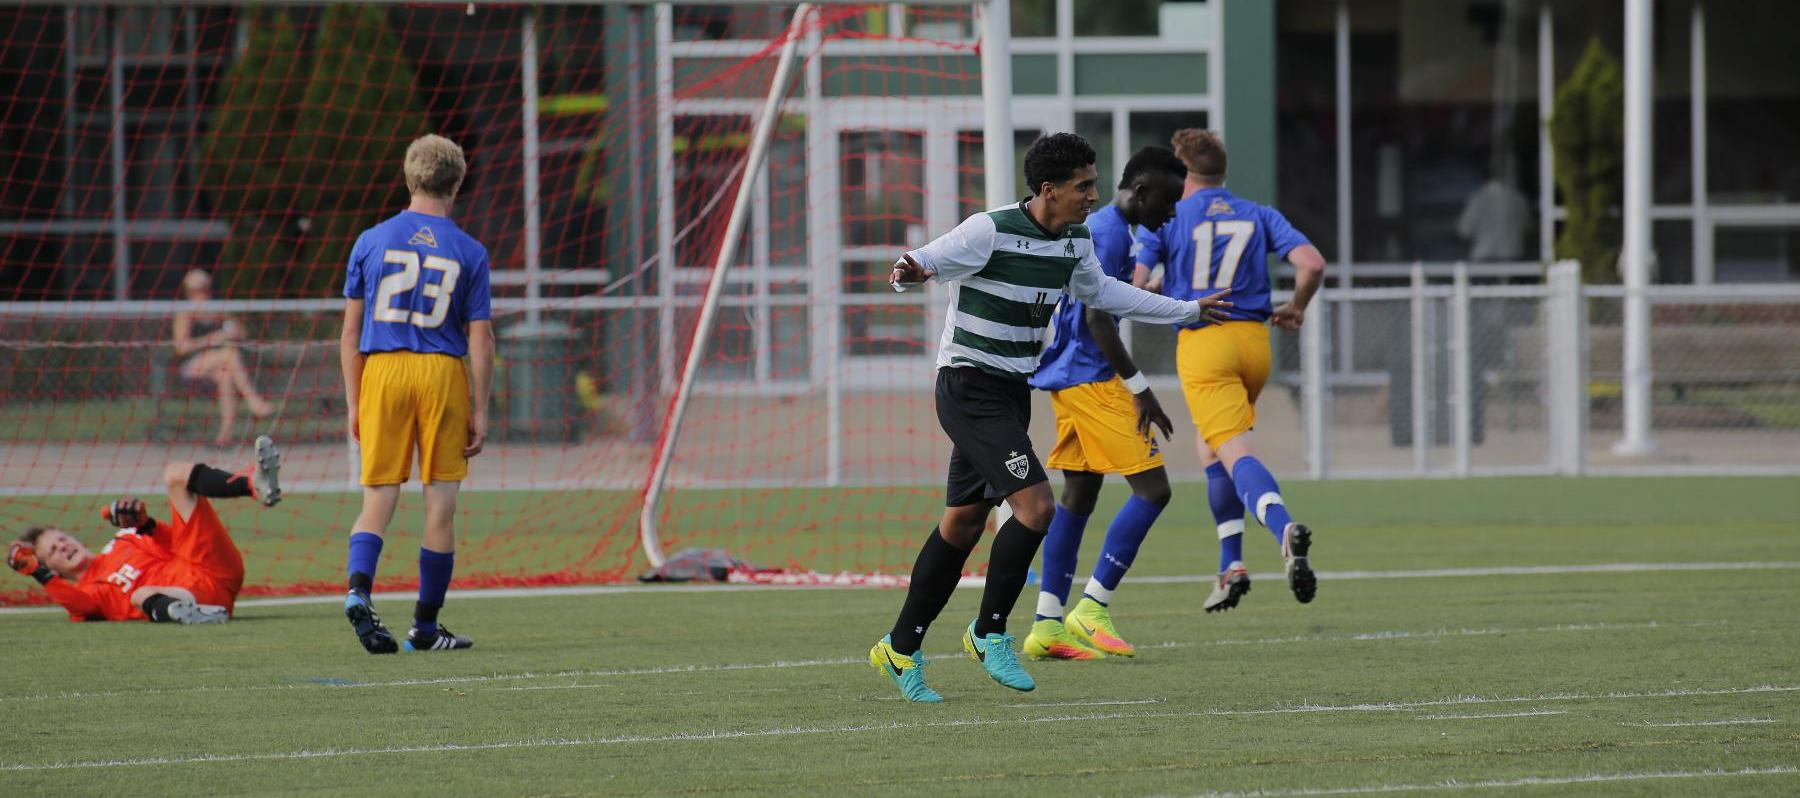 Men's Soccer Cant Hold On To Early Lead Against SUNY-Fredonia